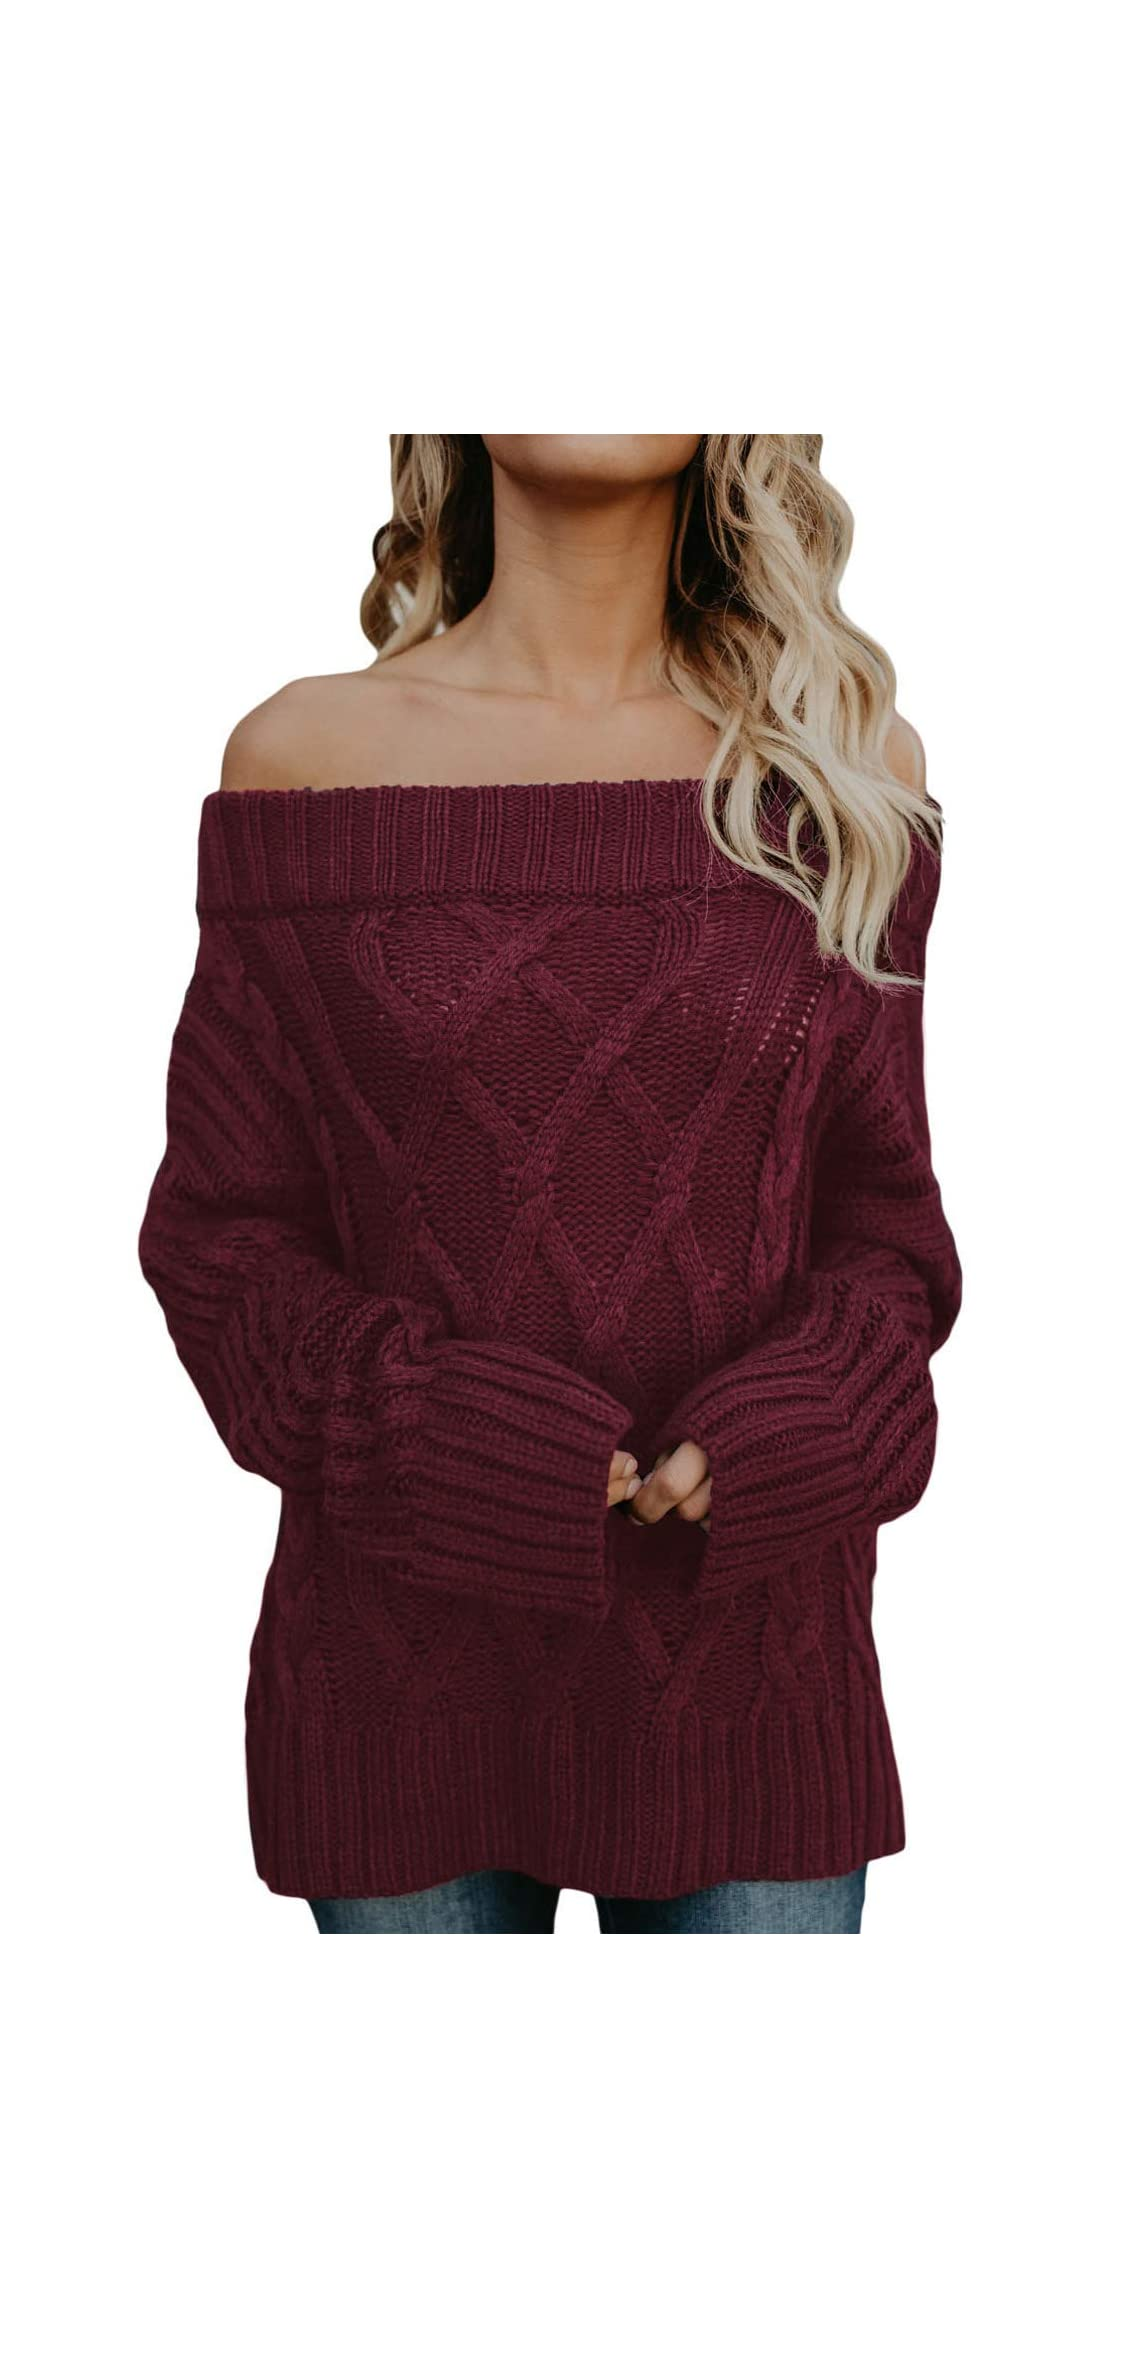 Womens Loose Knitted Off The Shoulder Oversized Top